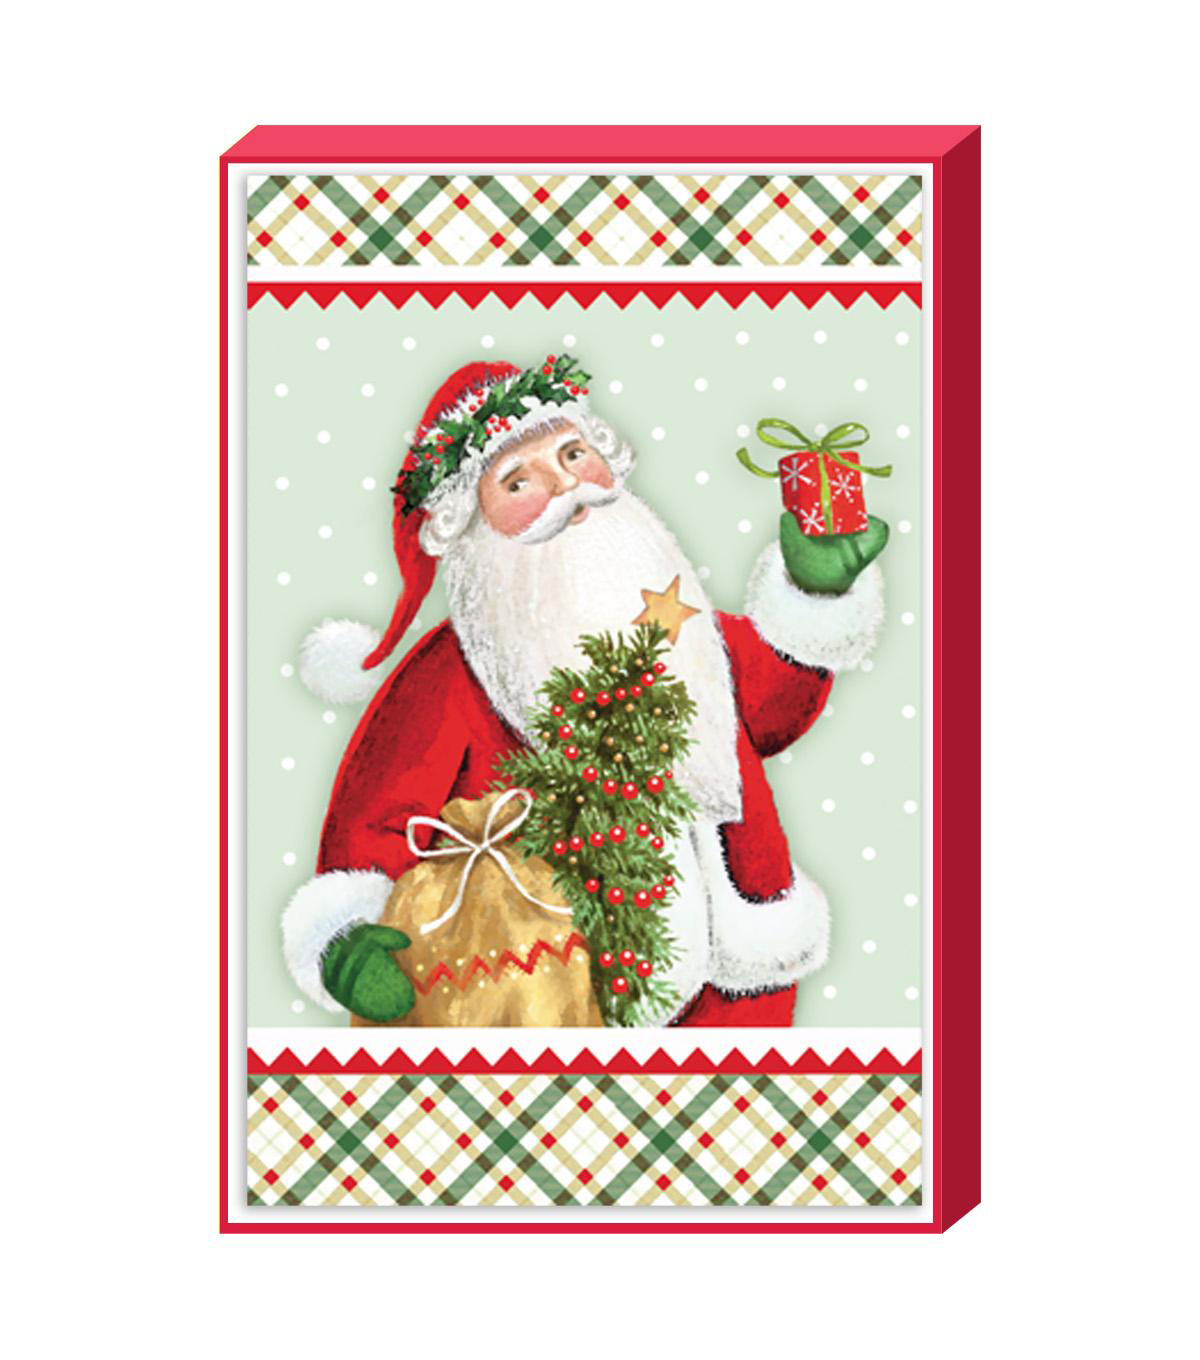 Holiday Cheer $12.99 Deluxe Traditional-Santa With Plaid Cards